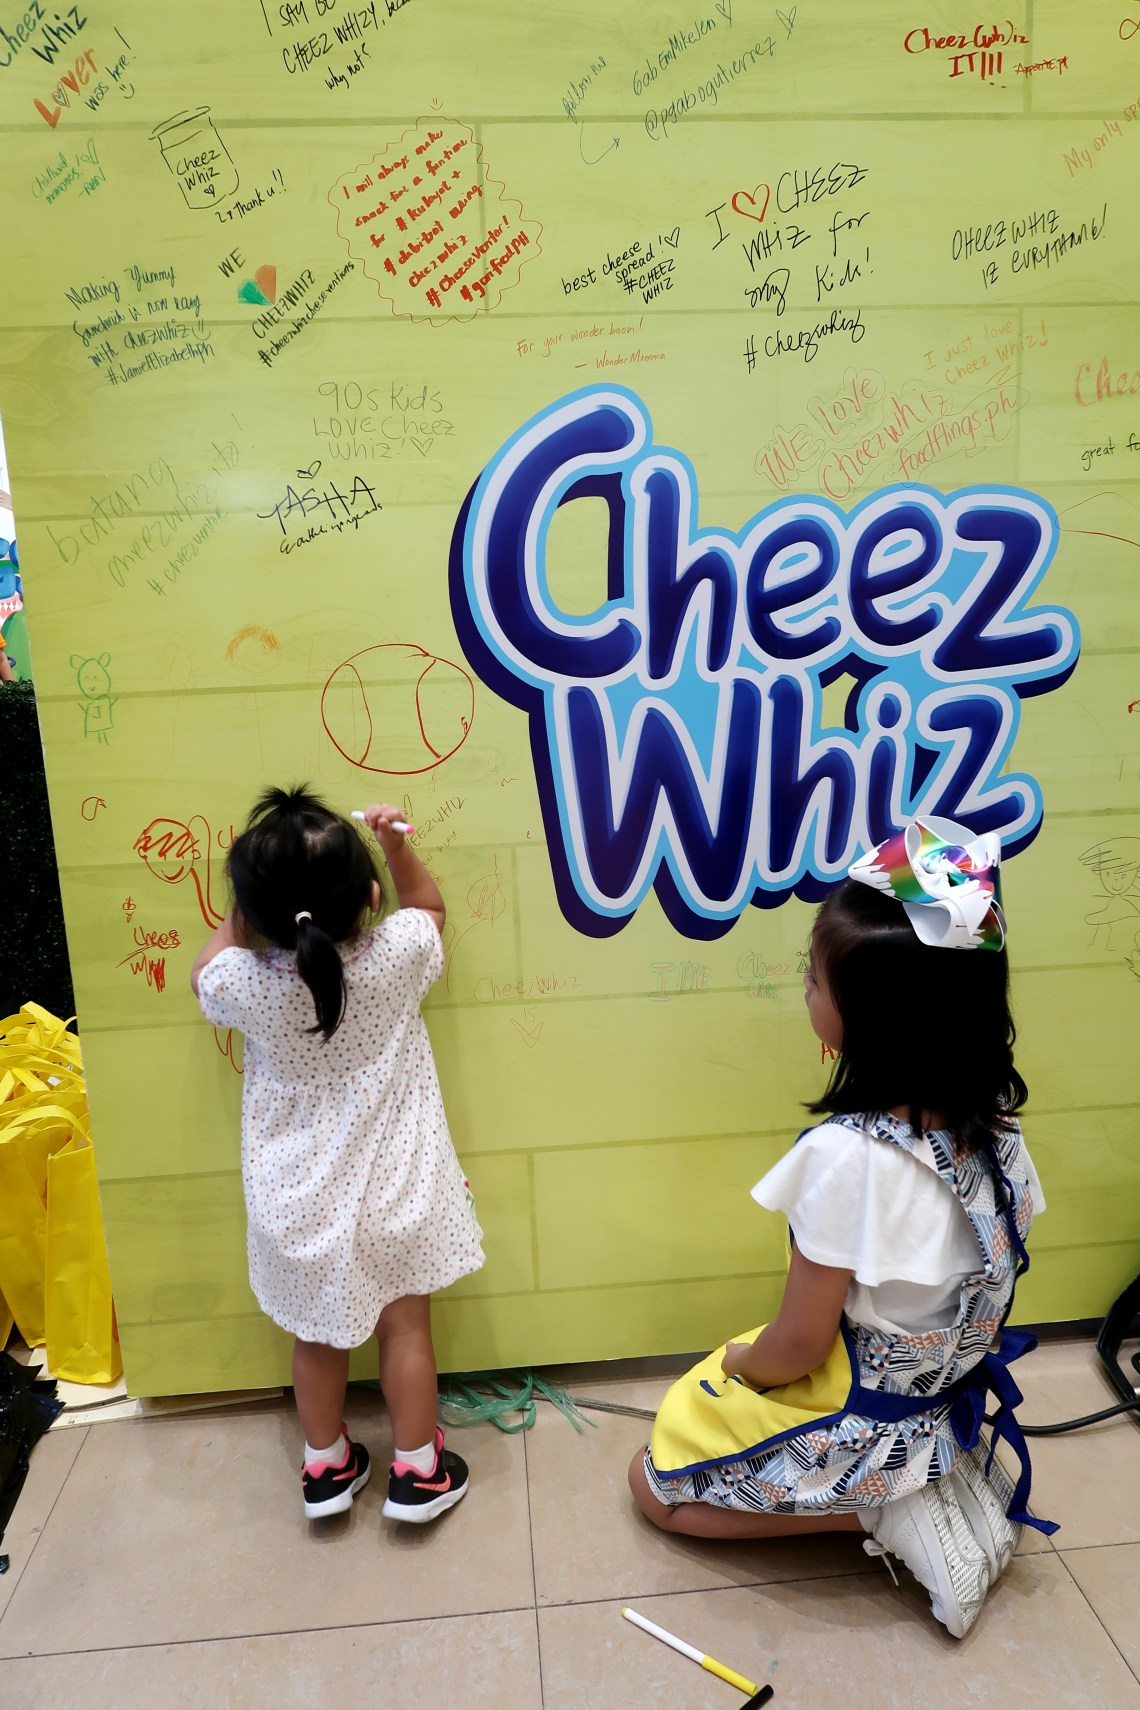 dyosathemomma: Cheez Whiz #Cheeseventions creative snacks for kids, AmNiszhaGirl with Gummy Carlos